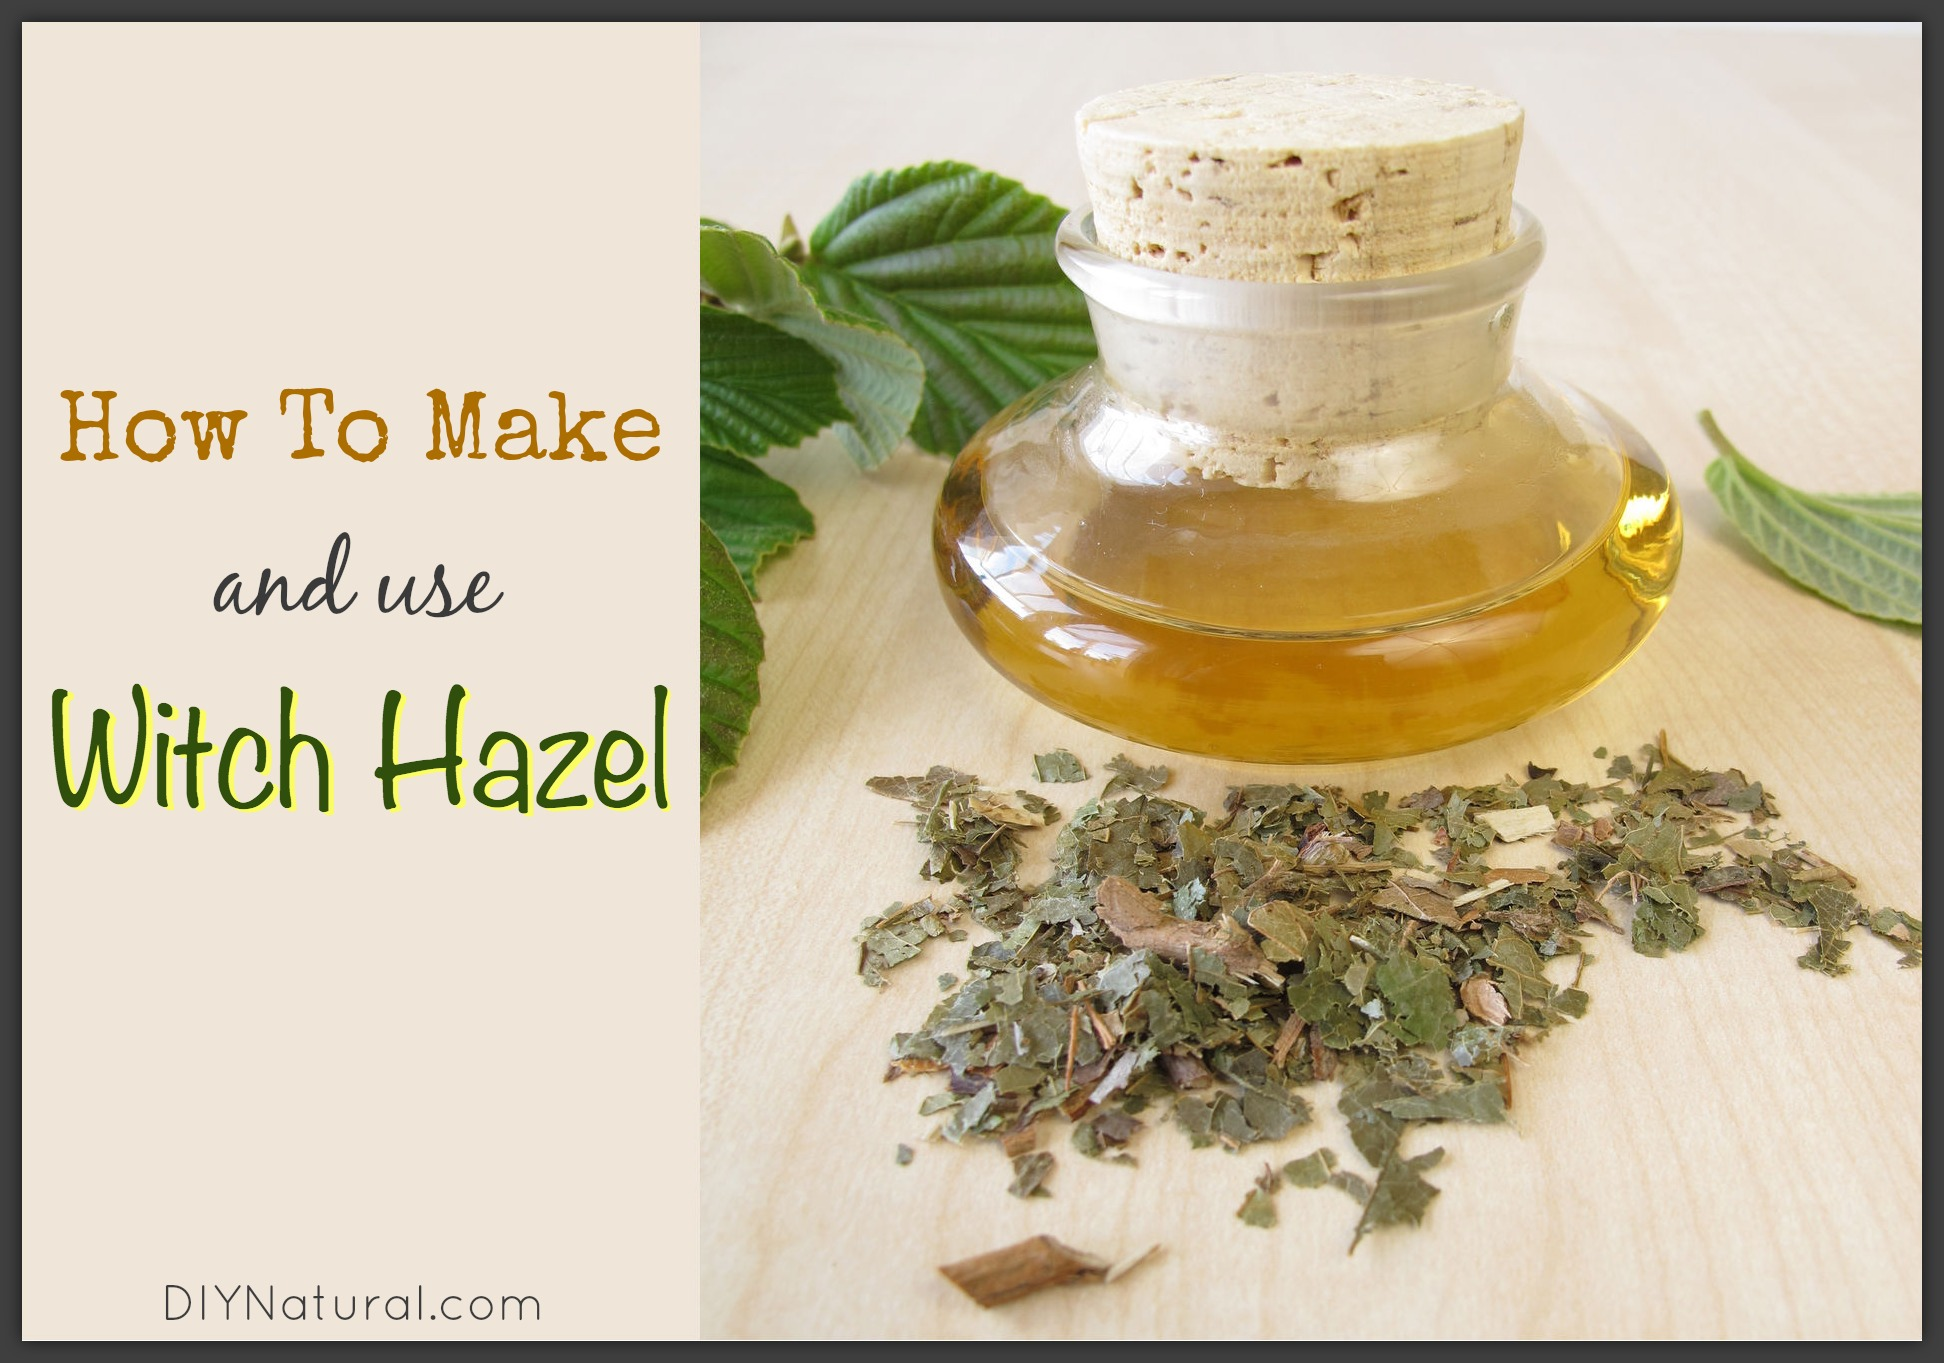 How to Make and Use Your Own Witch Hazel Tonic